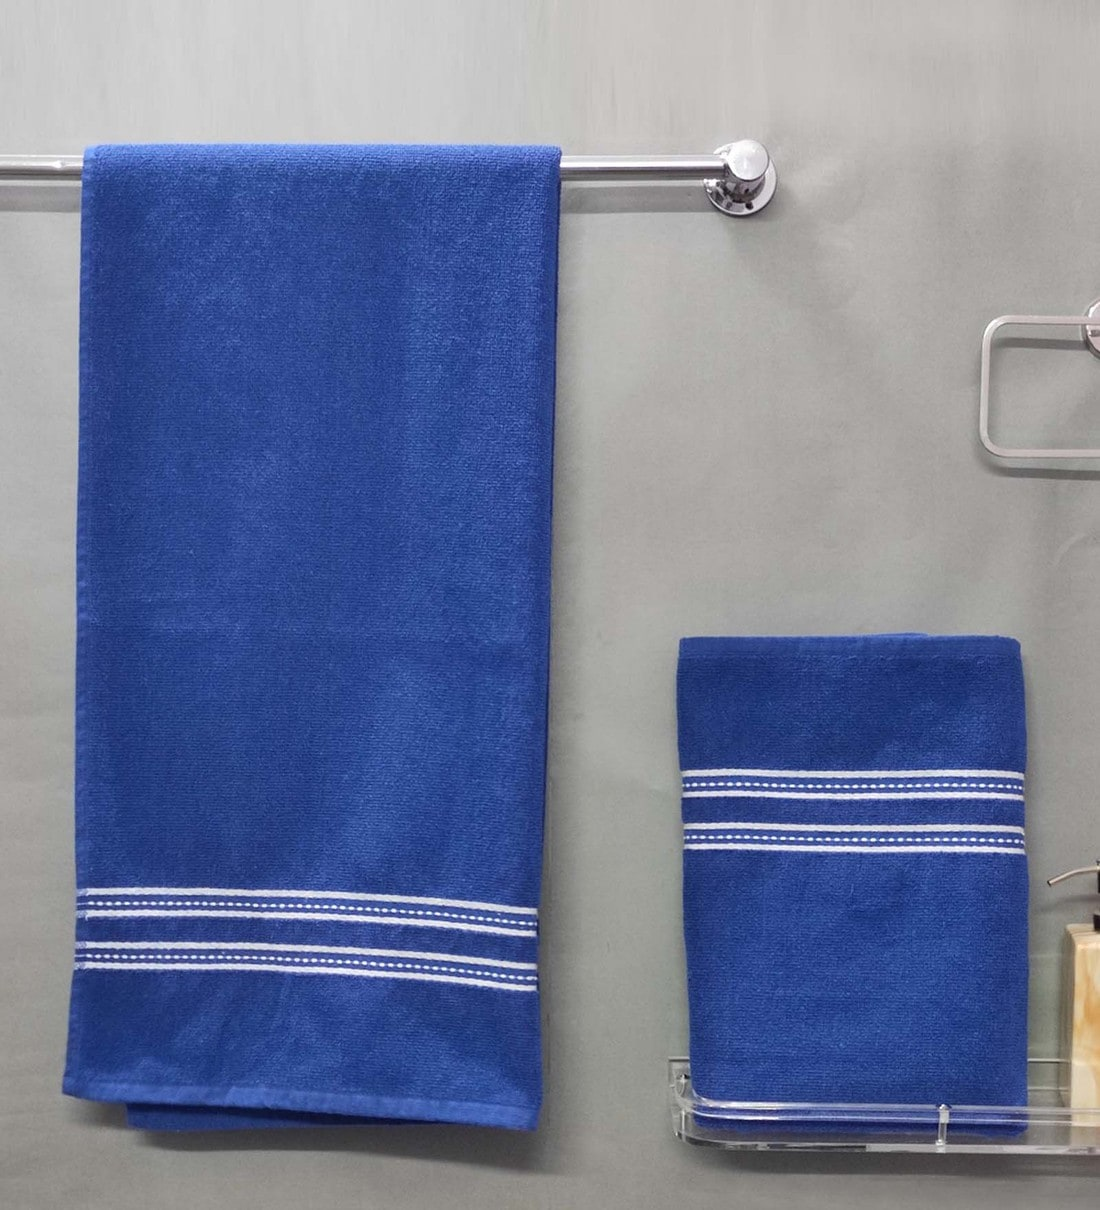 Buy Blue Cotton 400 Gsm Bath Towels Set Of 2 By Cotton Boll Textiles Online Solid Colour Bath Towels Bath Towels Furnishings Pepperfry Product